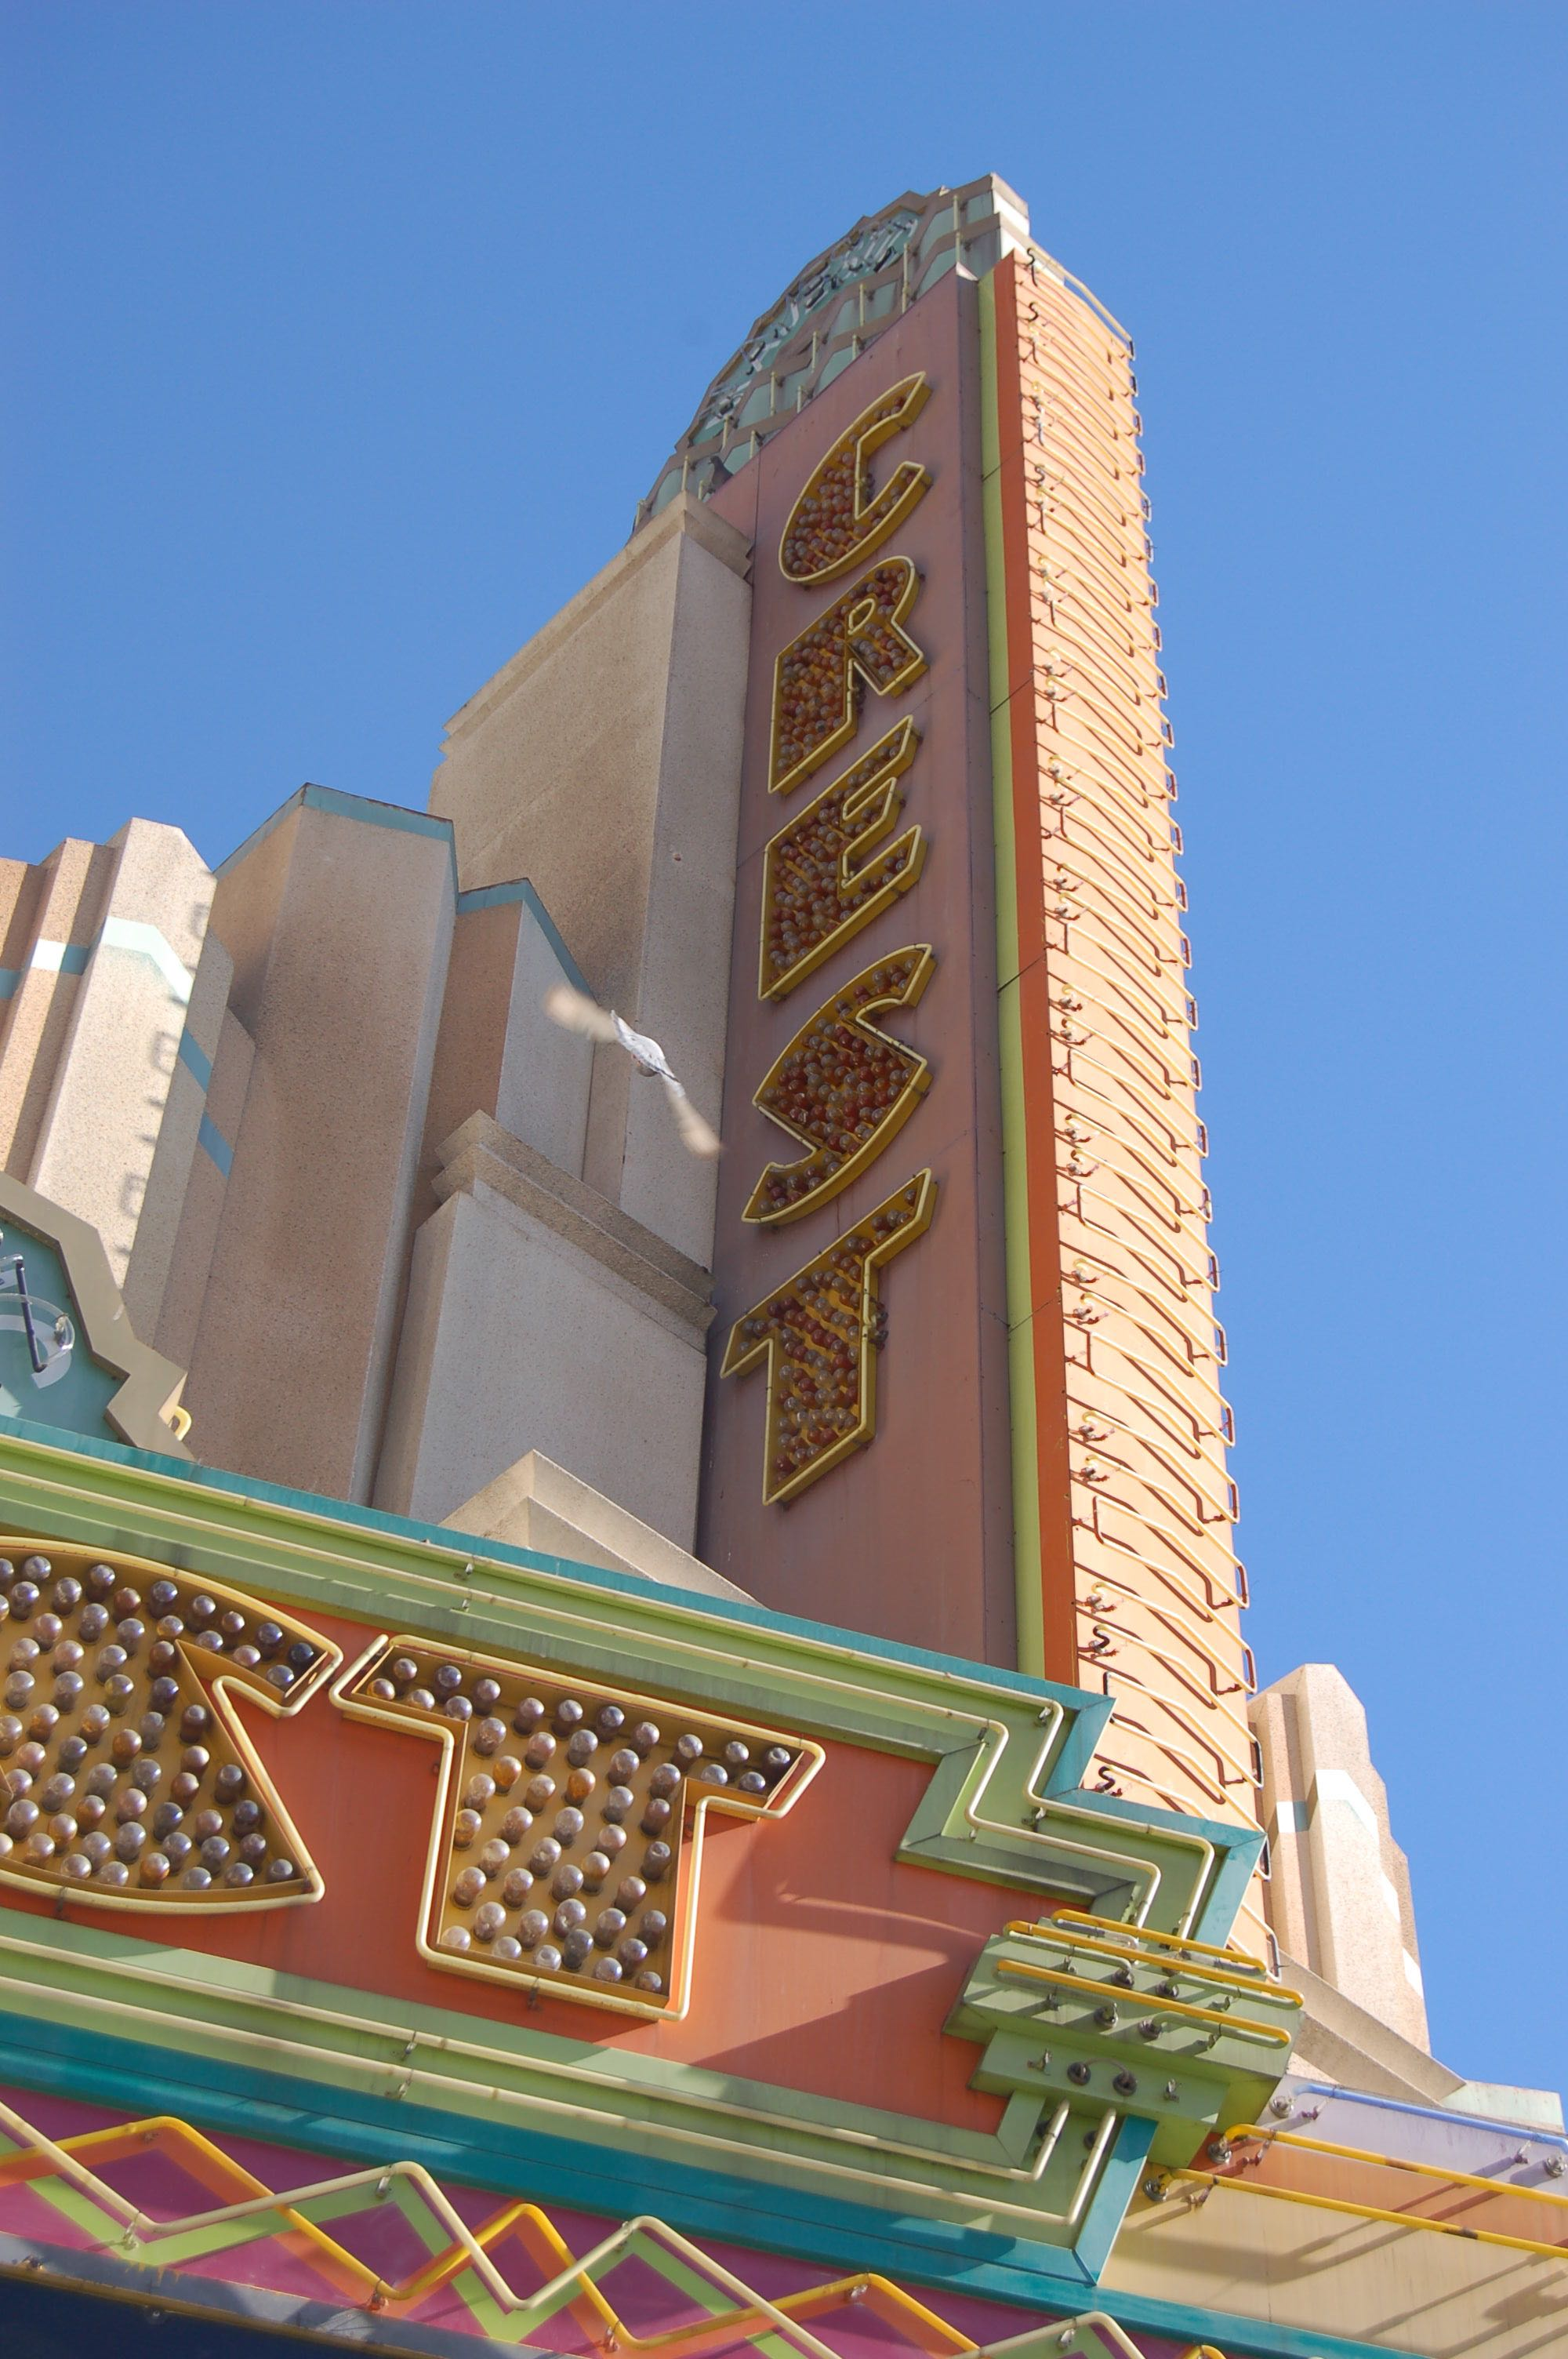 The World Premier was held at the Crest Theatre on Westwood Blvd in Los Angeles.